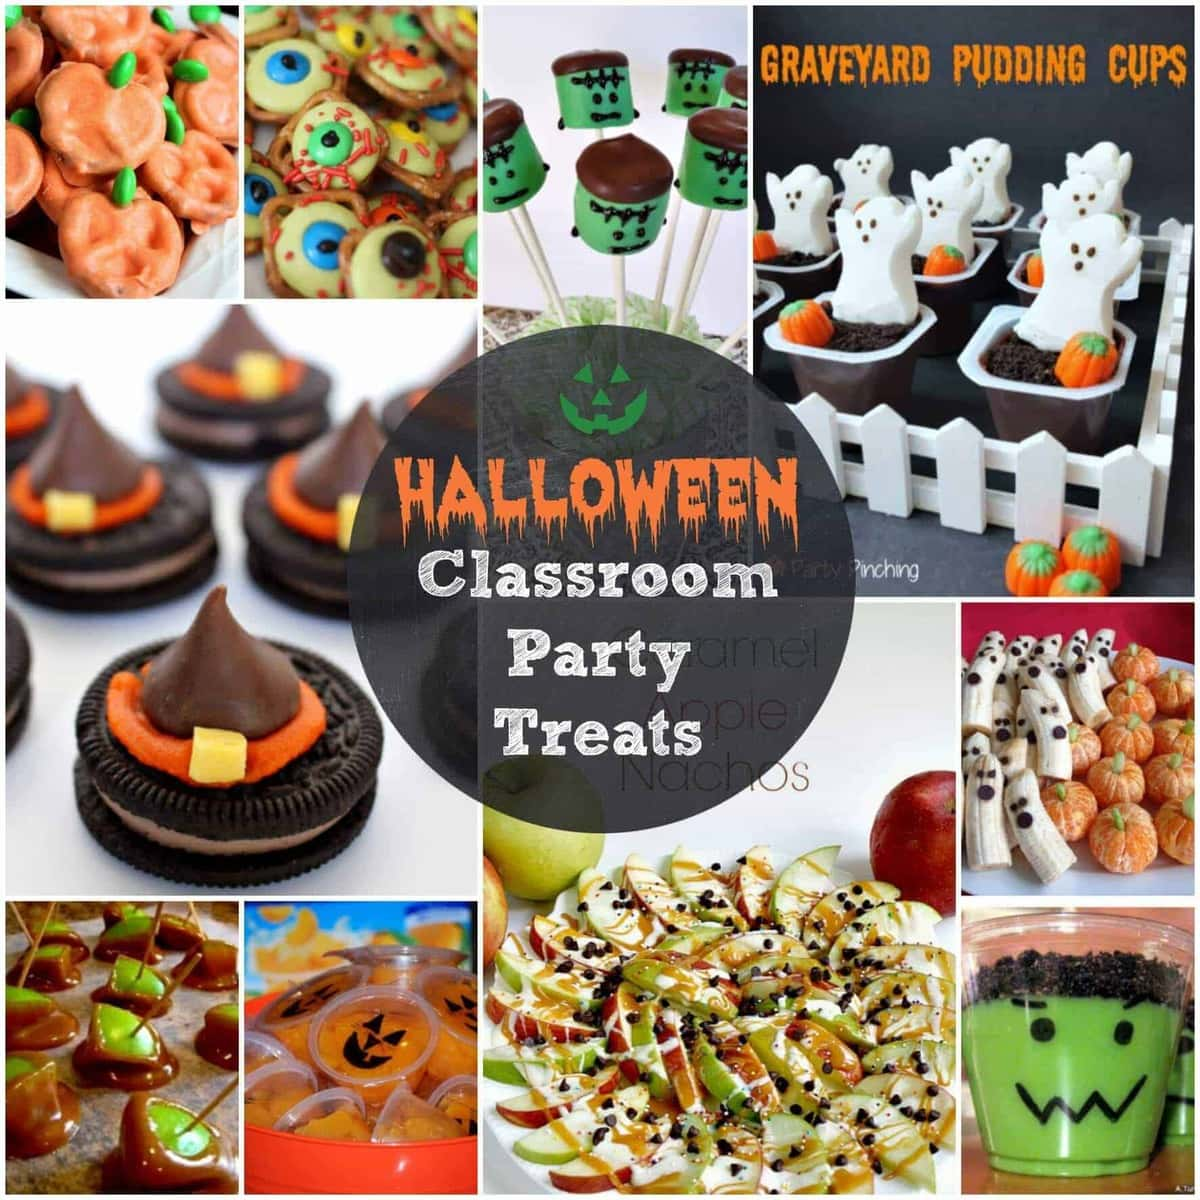 Classroom Ideas For Halloween Party ~ Easy halloween treats for your classroom parties page